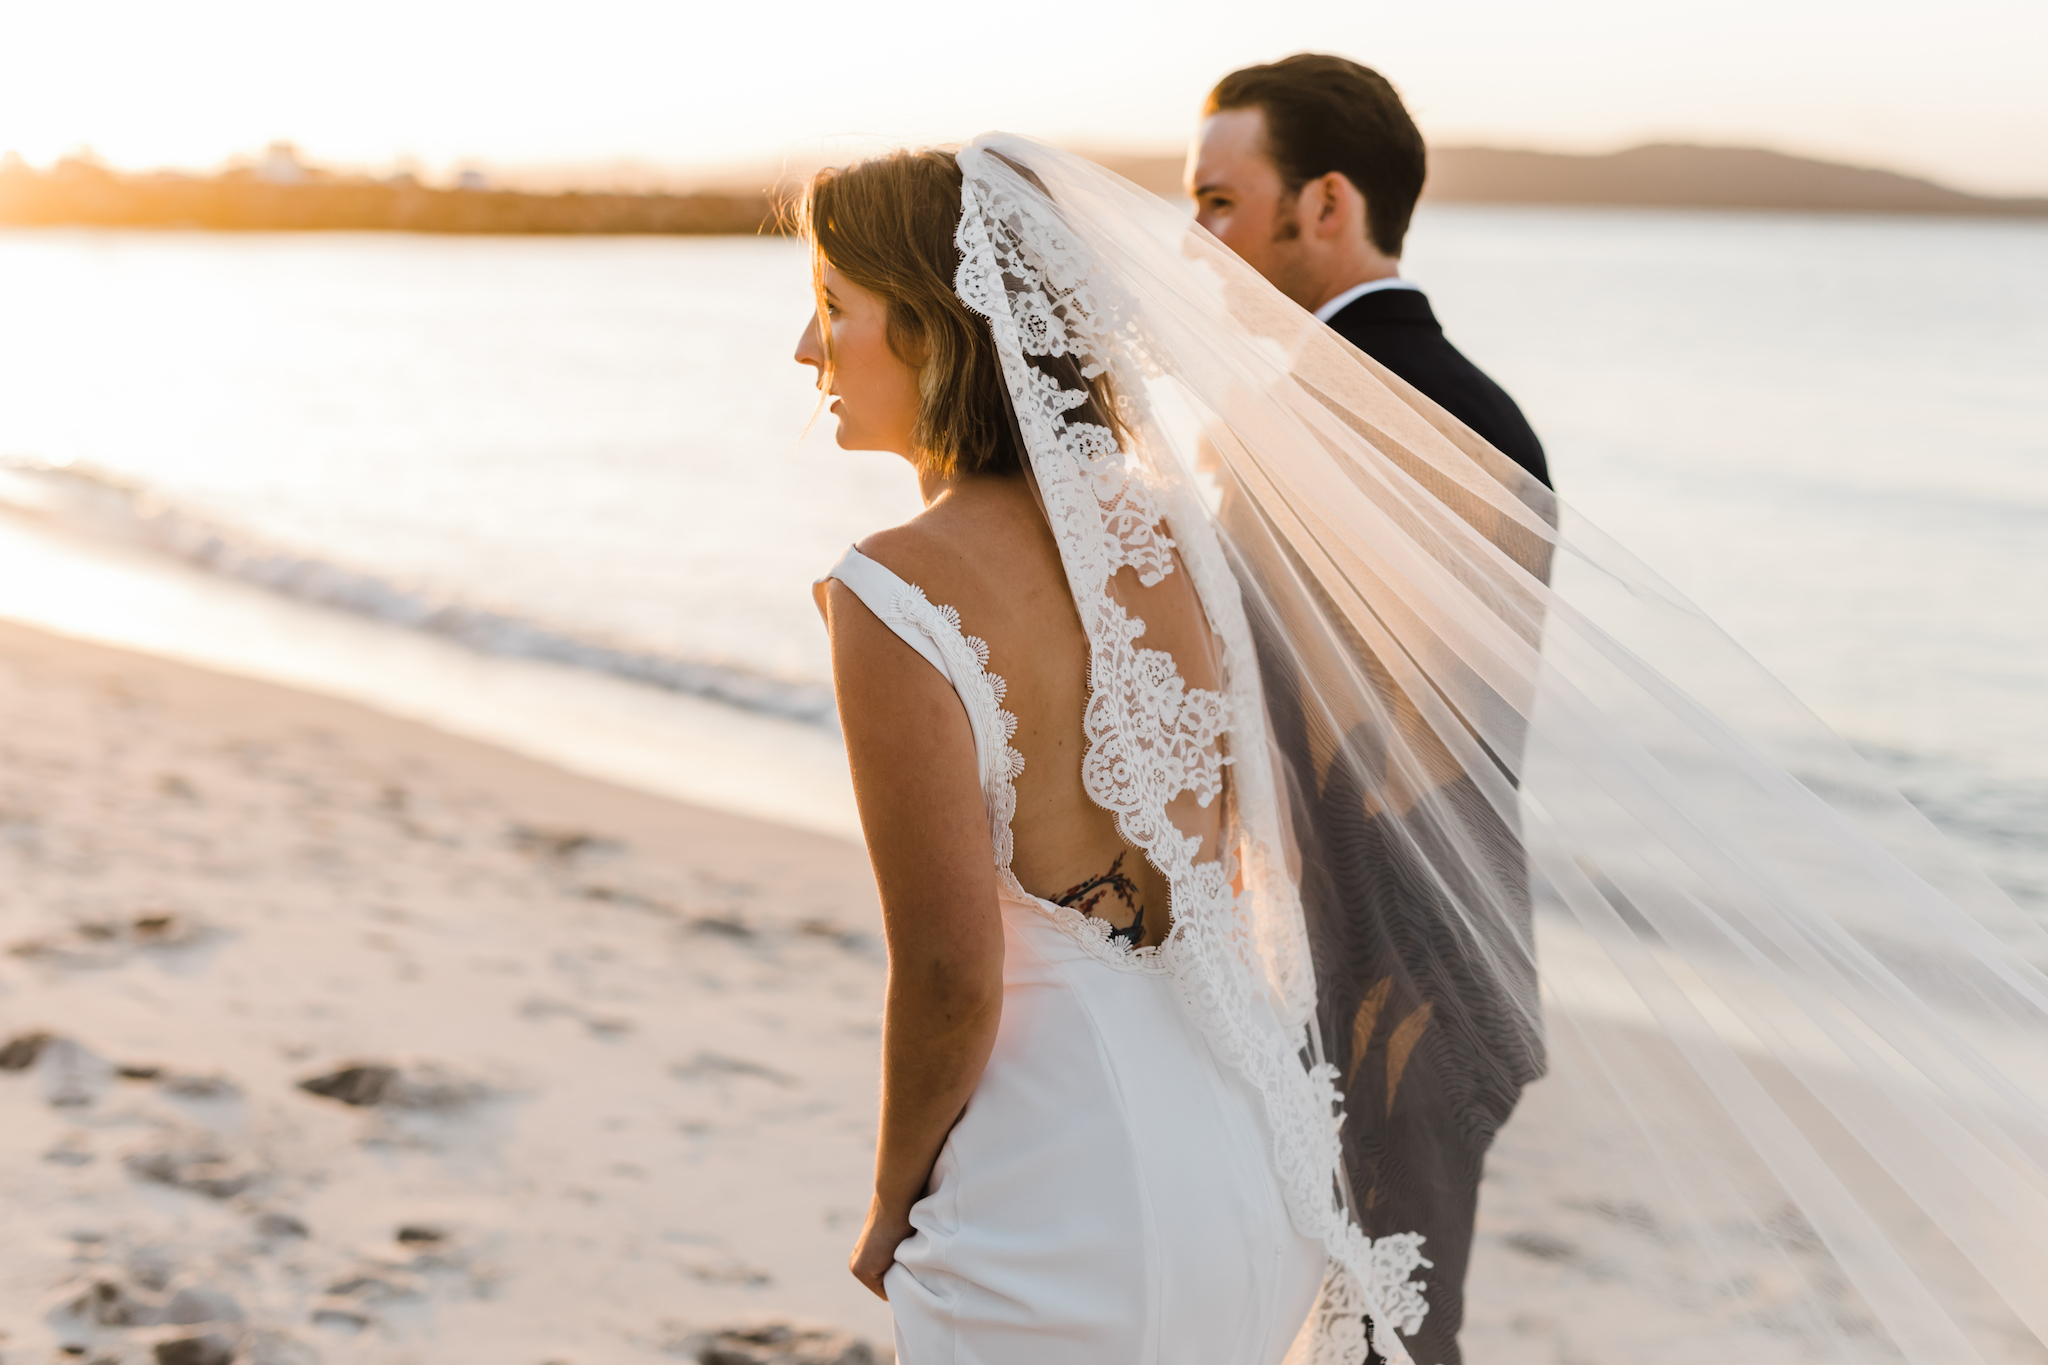 98.anchorageportstephens-melissa+harry.jpg